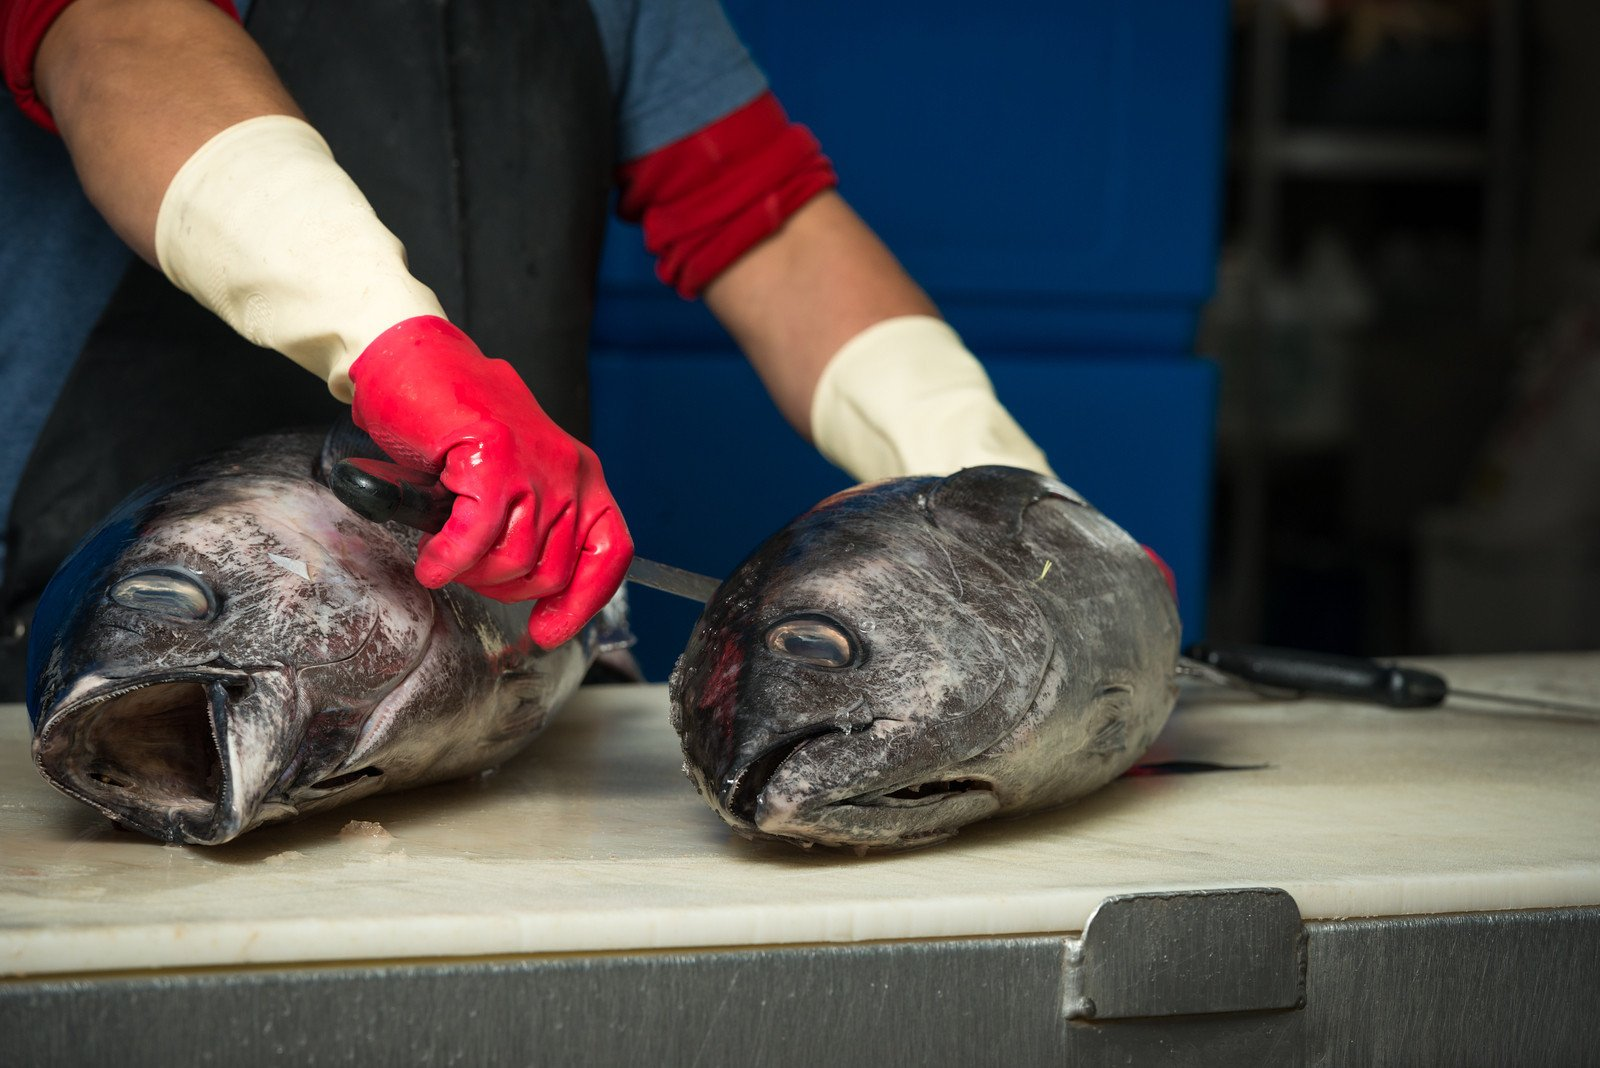 A man gutting two large fish